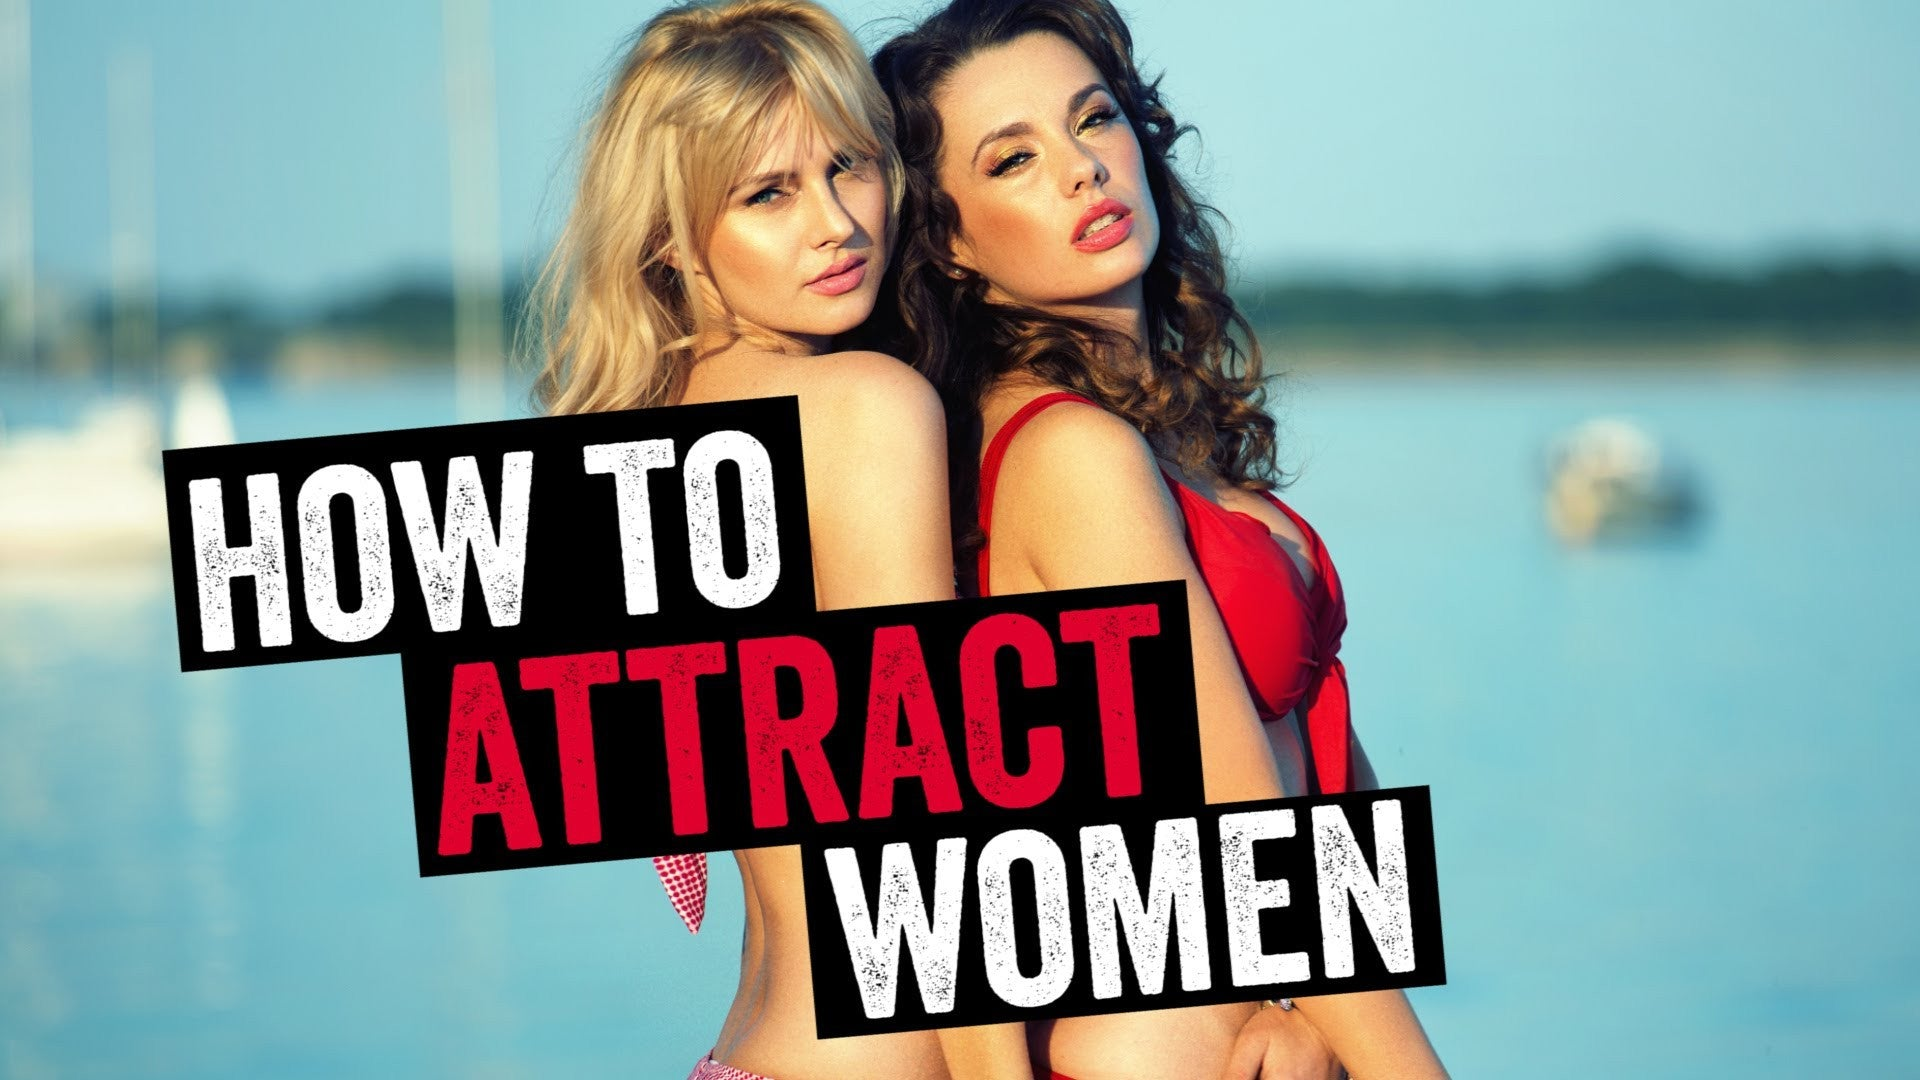 How To Attract Women Using This 1 Simple Method